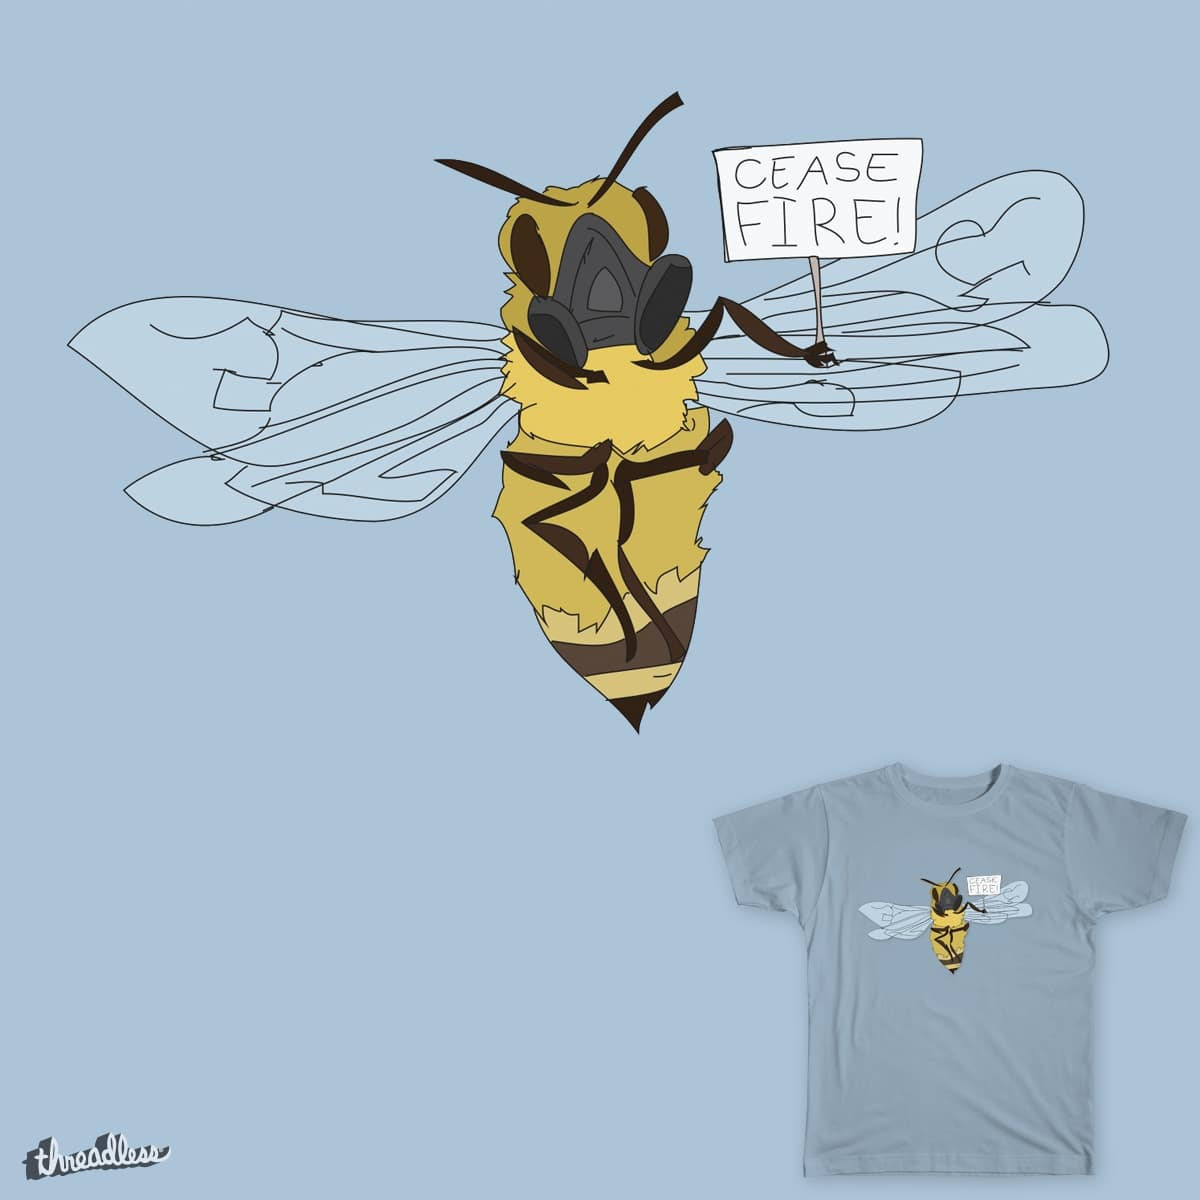 Cease Fire! by matt.brown.31521 on Threadless